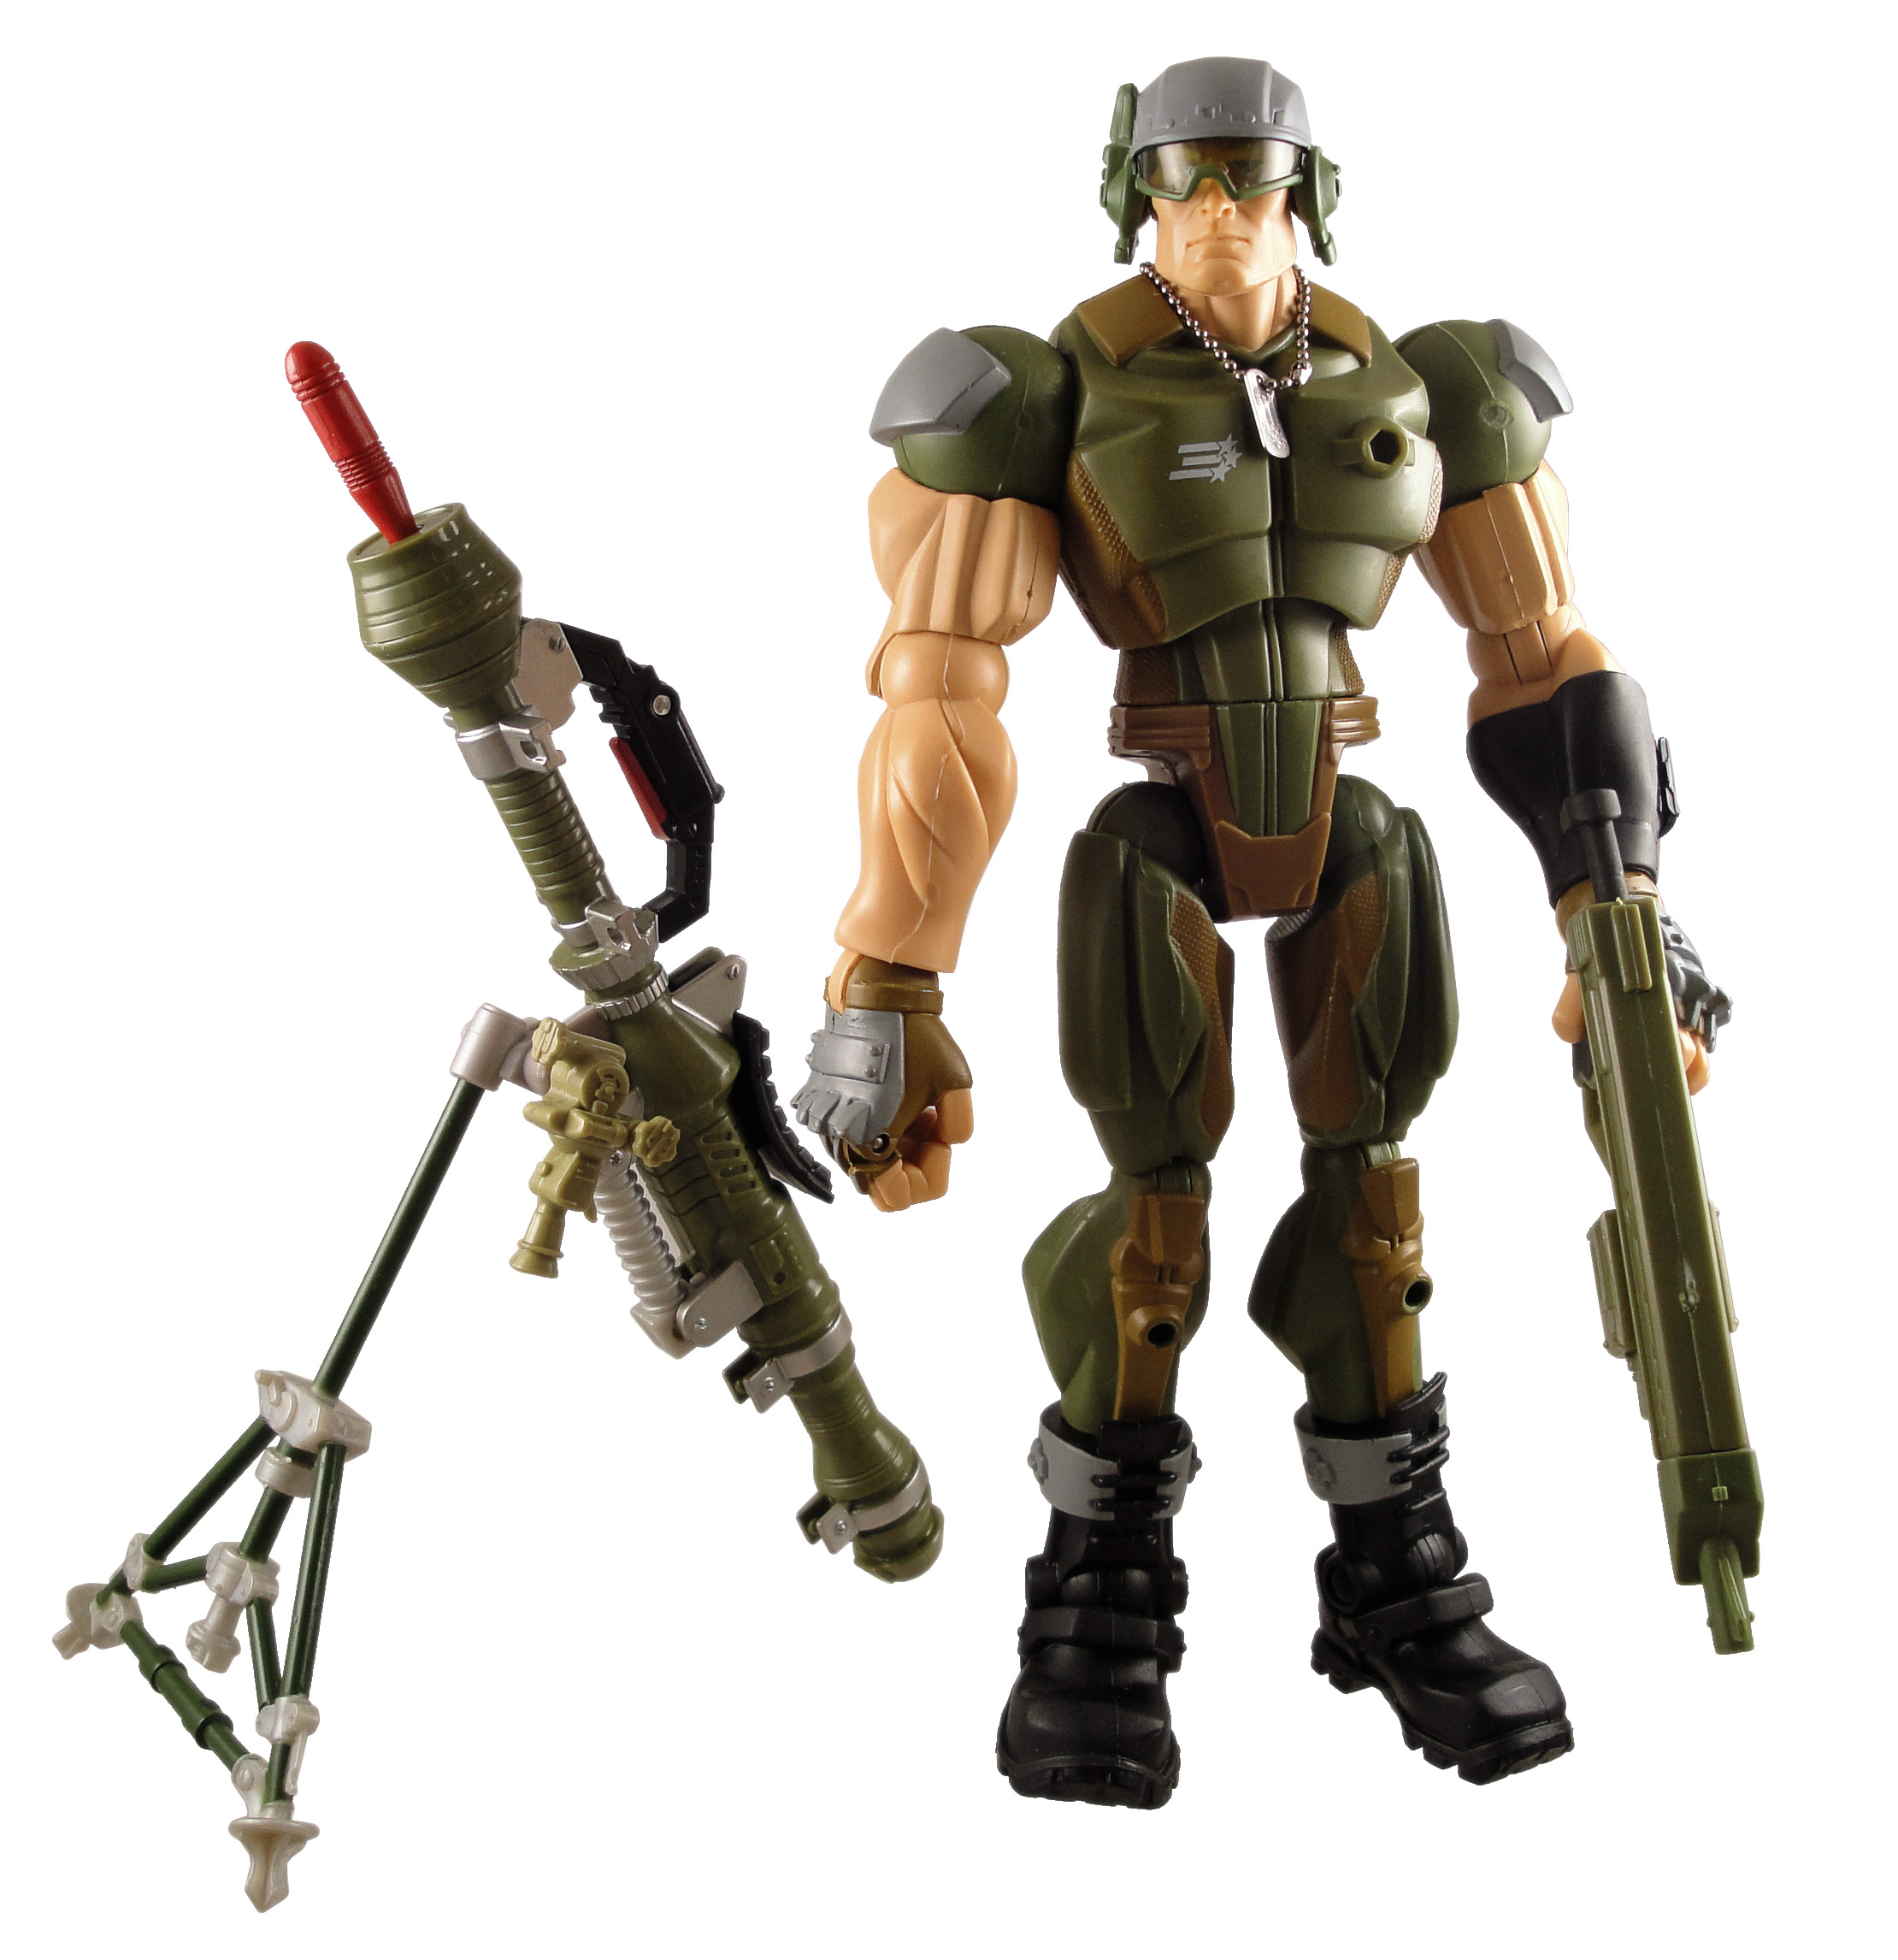 symbolic features of gi joe fi Sci-fi is a character from the gi joe: a real american hero toyline, comic books and cartoon series he is the gi joe team's laser trooper and debuted in 1986 contents [hide] 1 profile 2 toys 3 comics 31 marvel comics 32 devil's due 33 gi joe vs transformers 4 cartoons 41 sunbow 42 dic 5 books 6.